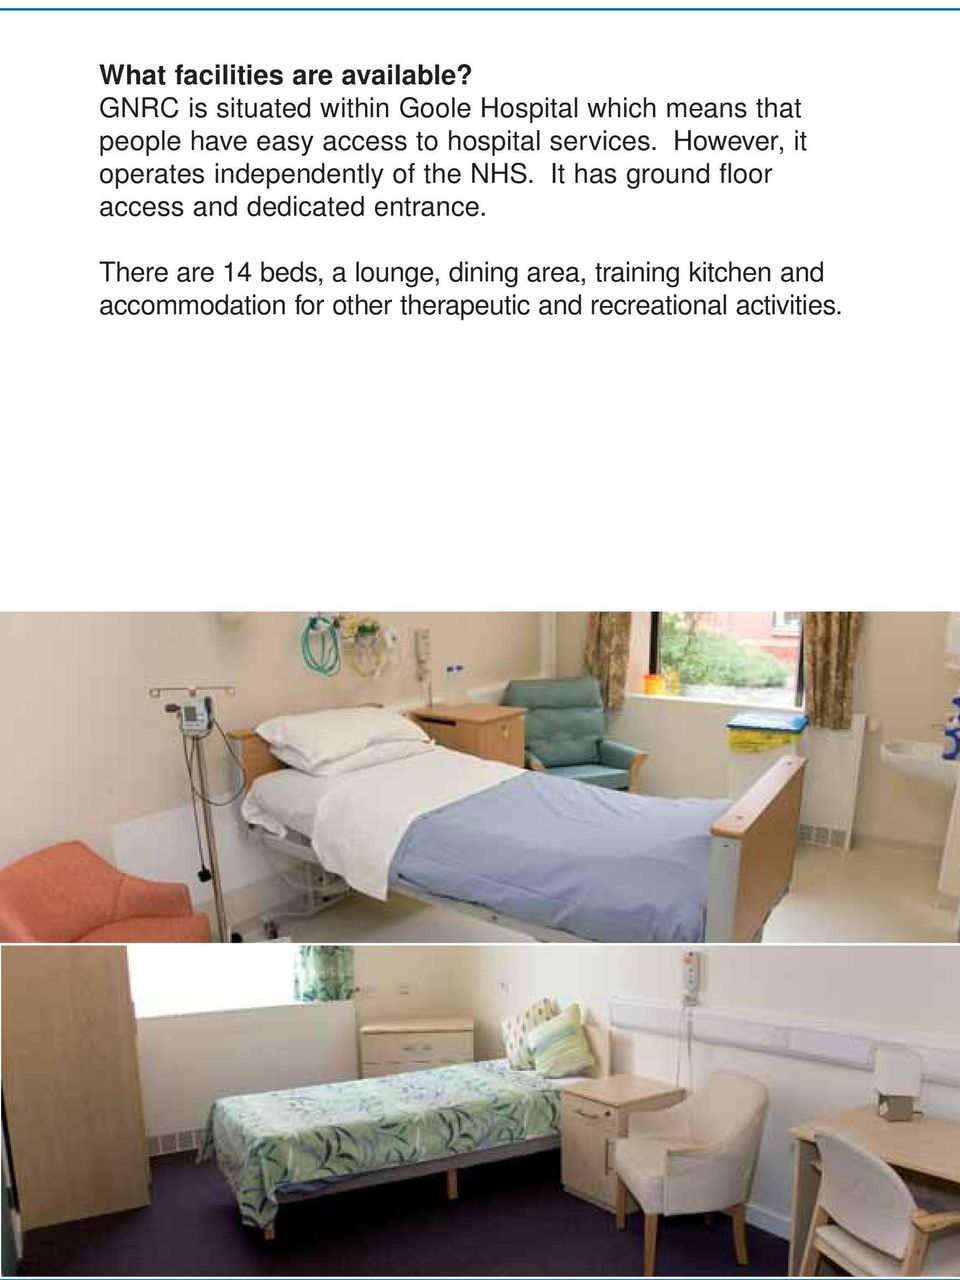 hospital services. However, it operates independently of the NHS.